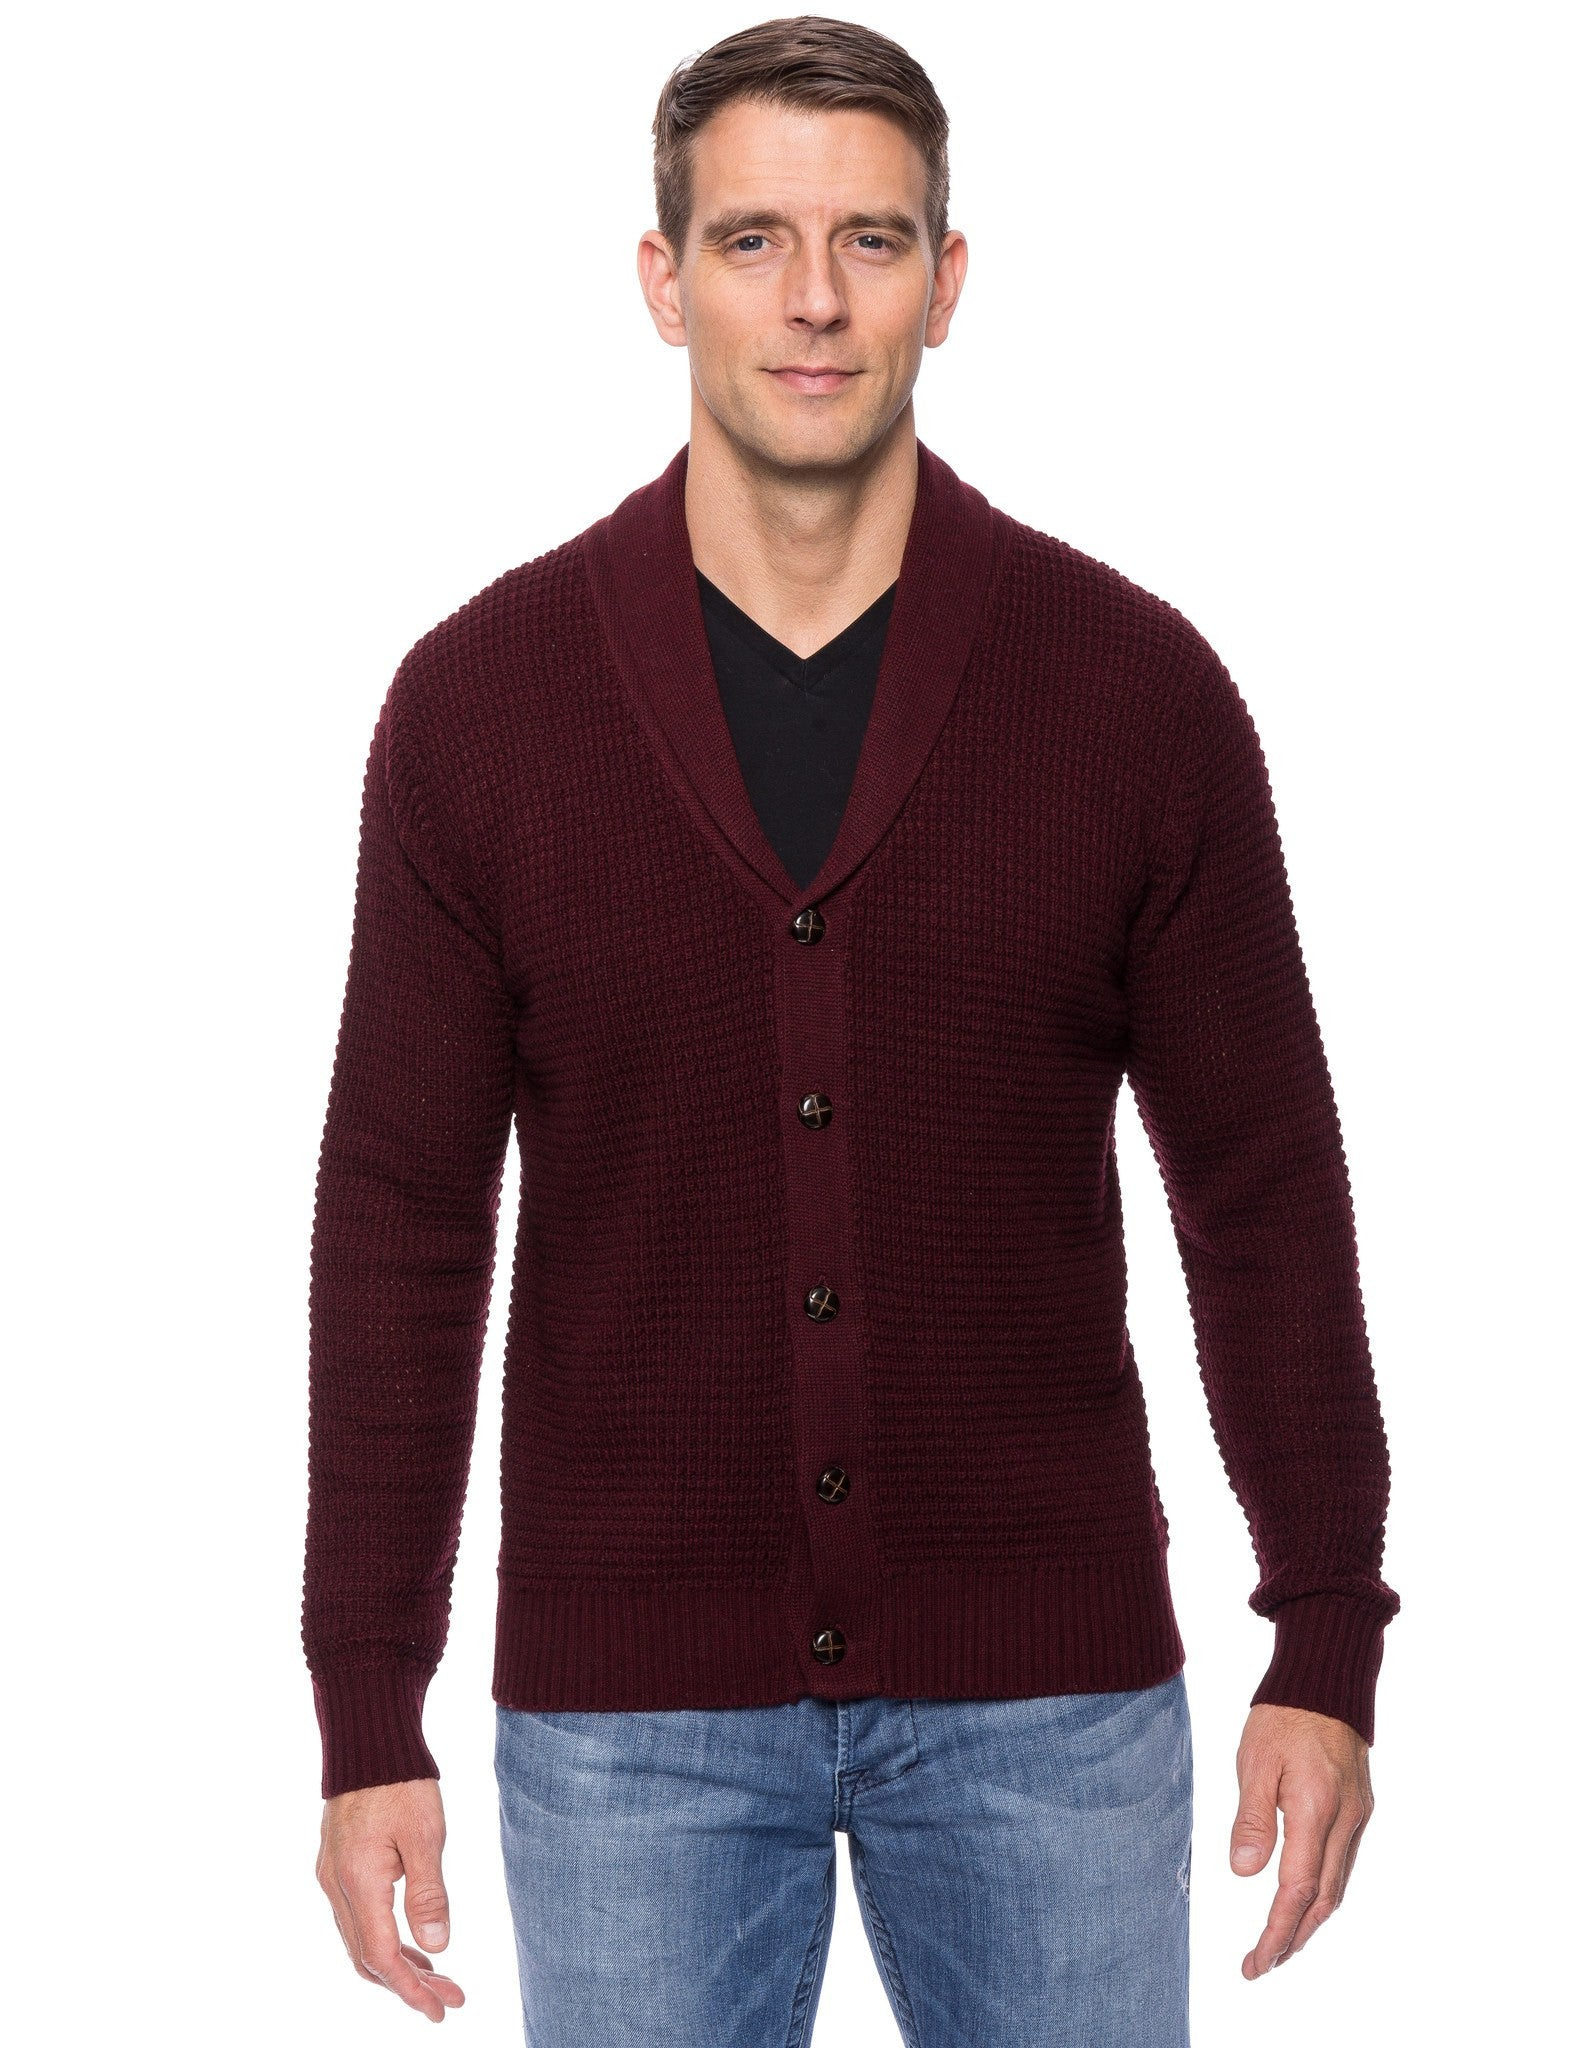 Tocco Reale Men's Wool Blend Shawl Collar Cardigan in Waffle Stitch